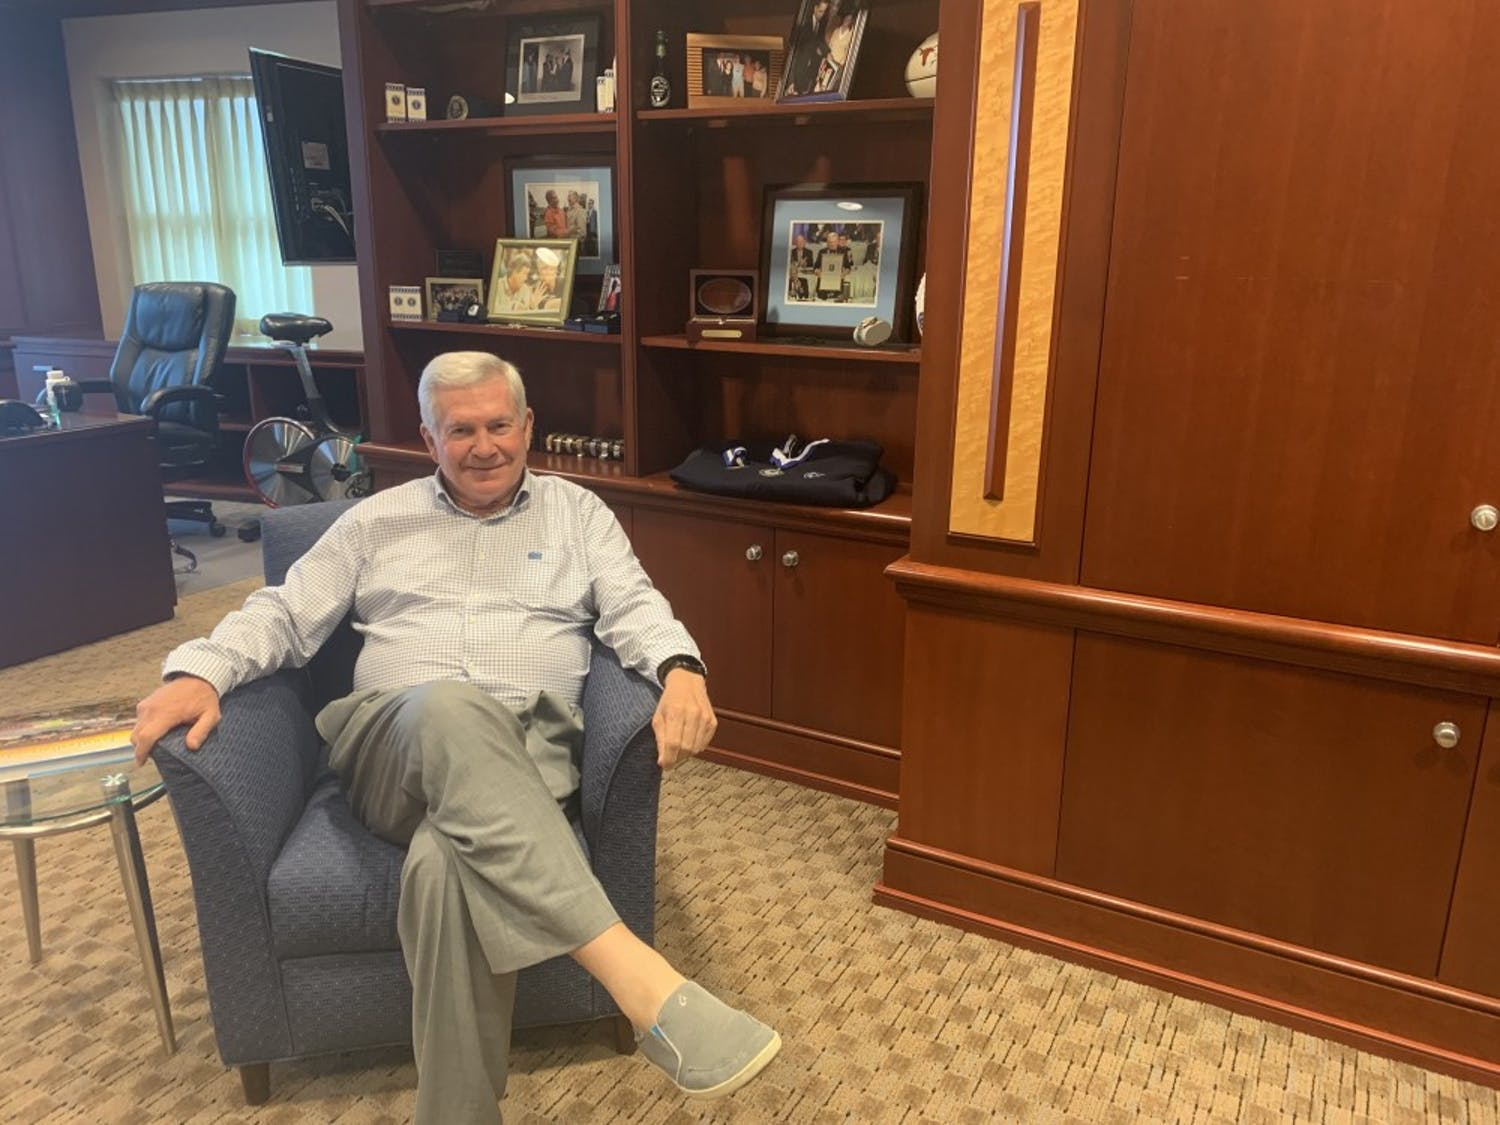 Mack Brown, the head coach of the football team, sat down with The Daily Tar Heel to talk about the upcoming season.